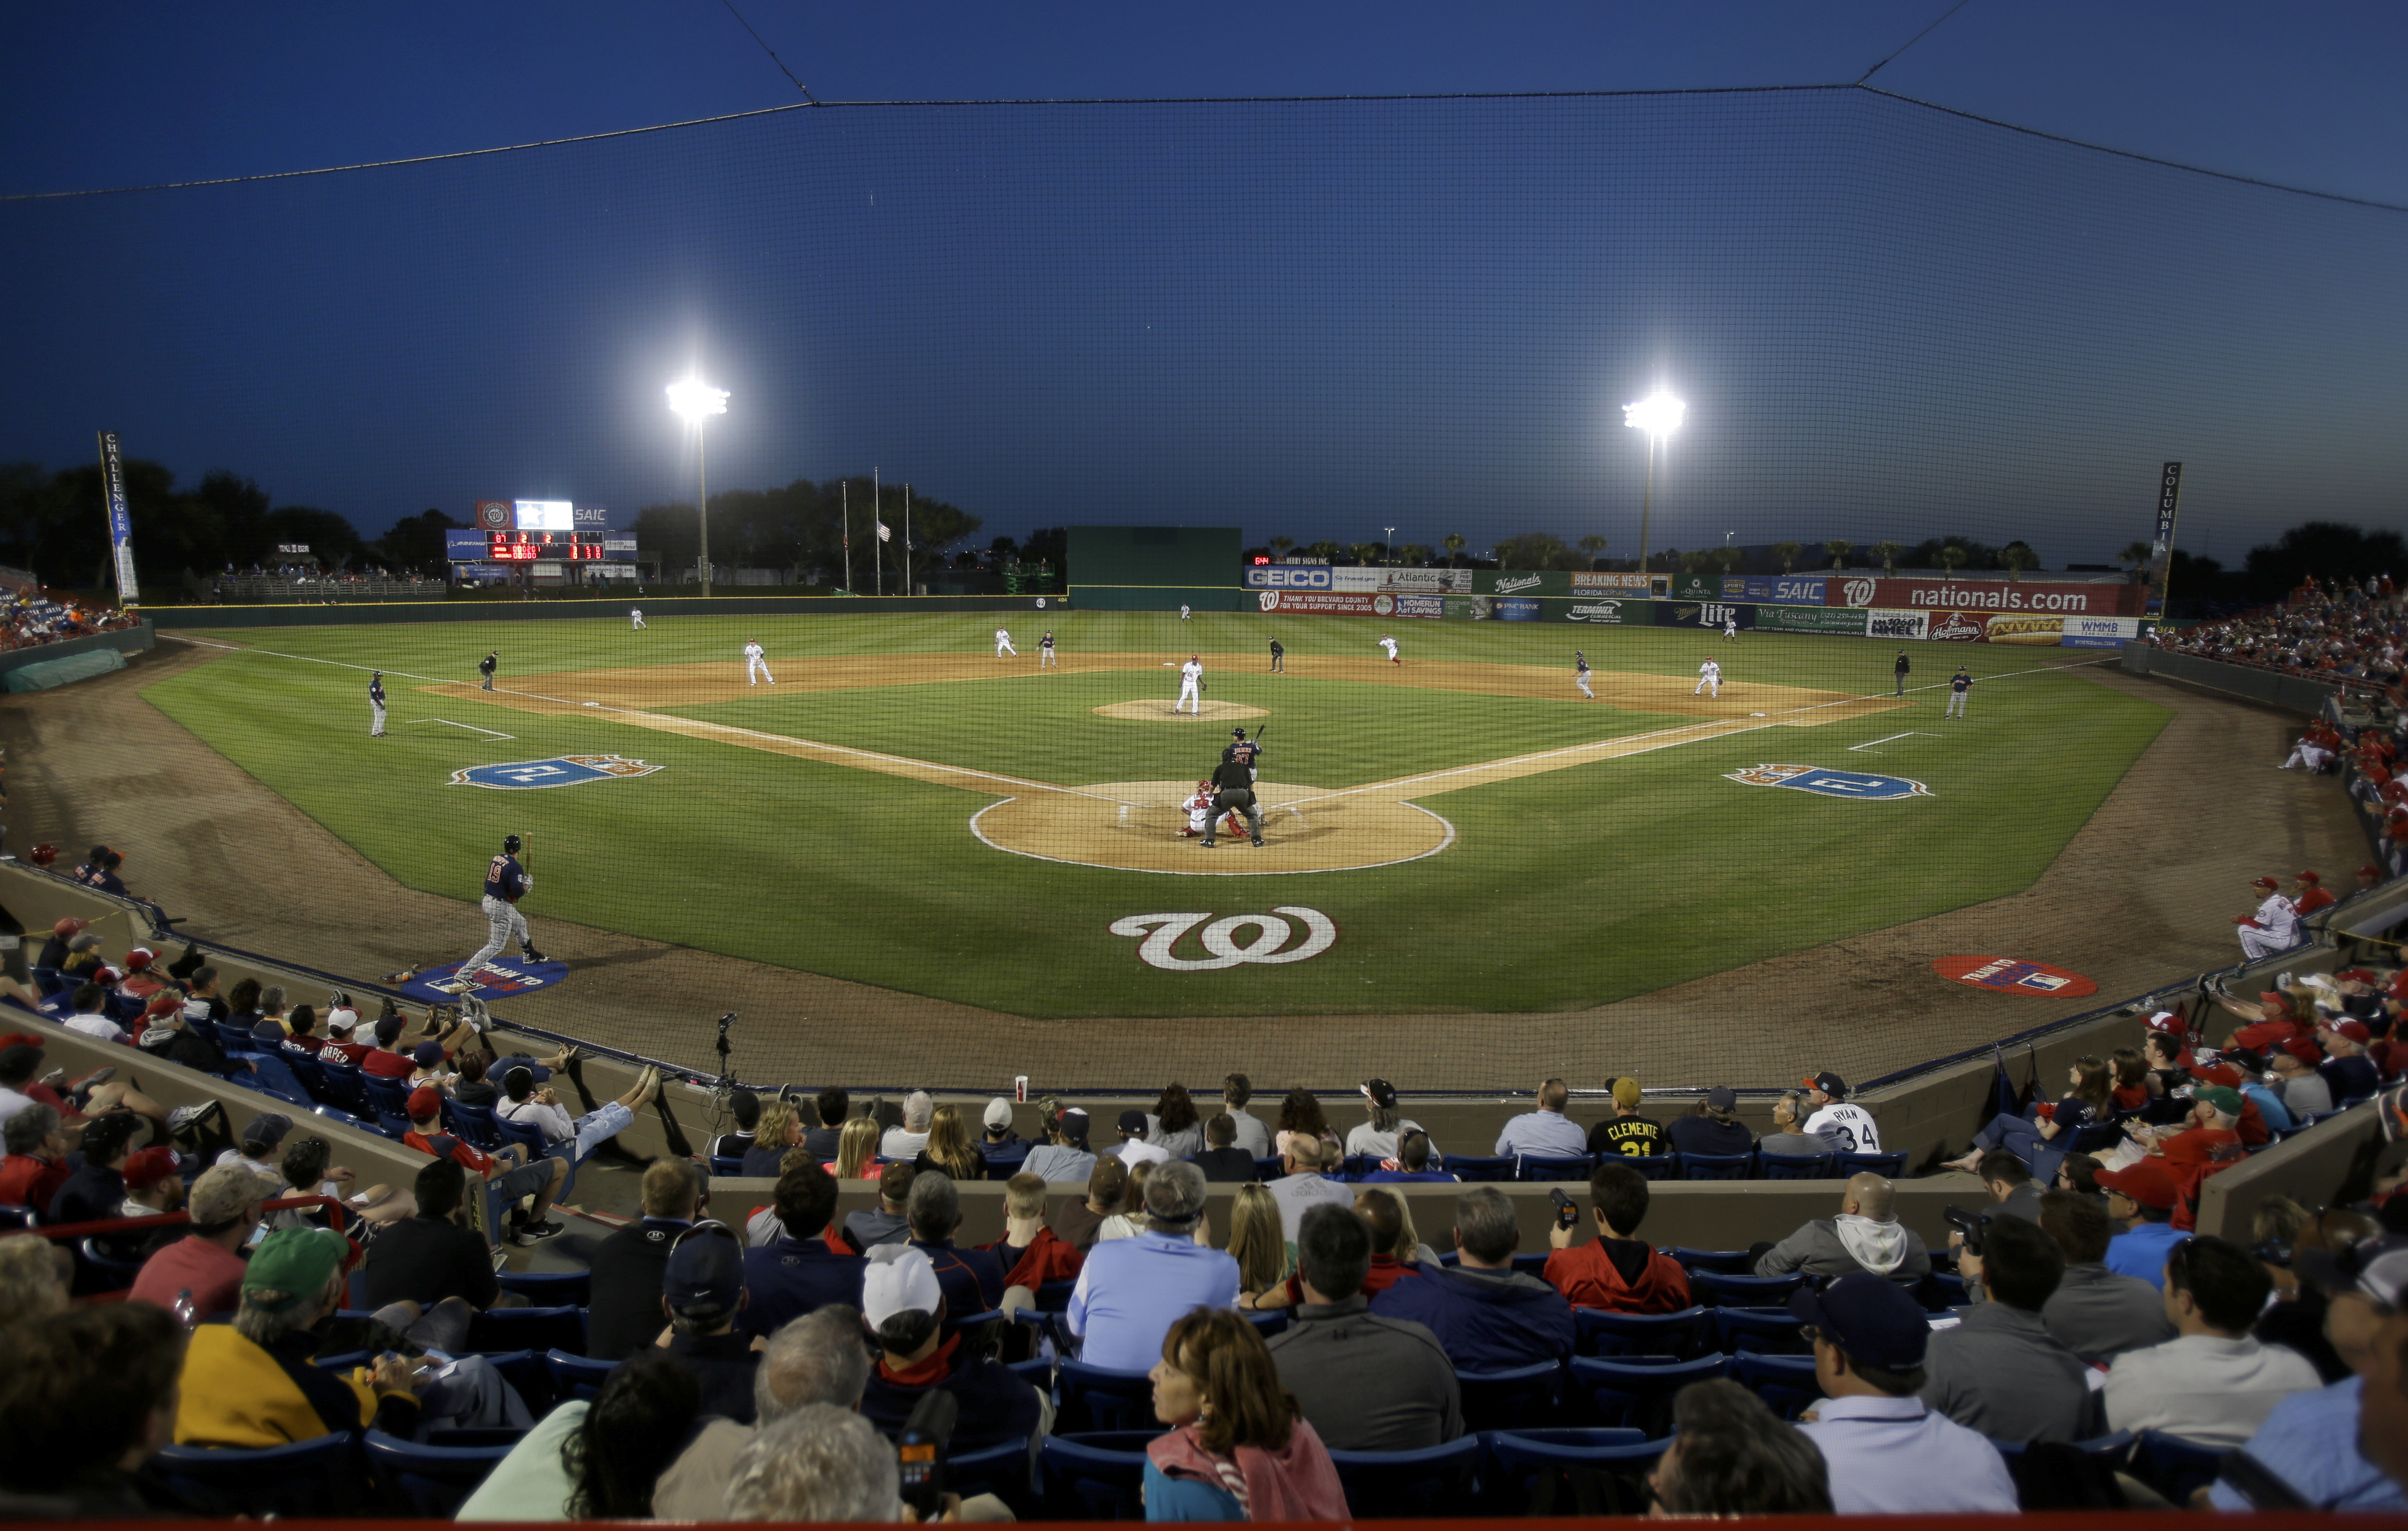 Fans watch a spring training baseball game between the Washington Nationals and the Houston Astros, Thursday, March 10, 2016, in Viera, Fla. (AP Photo/John Raoux)